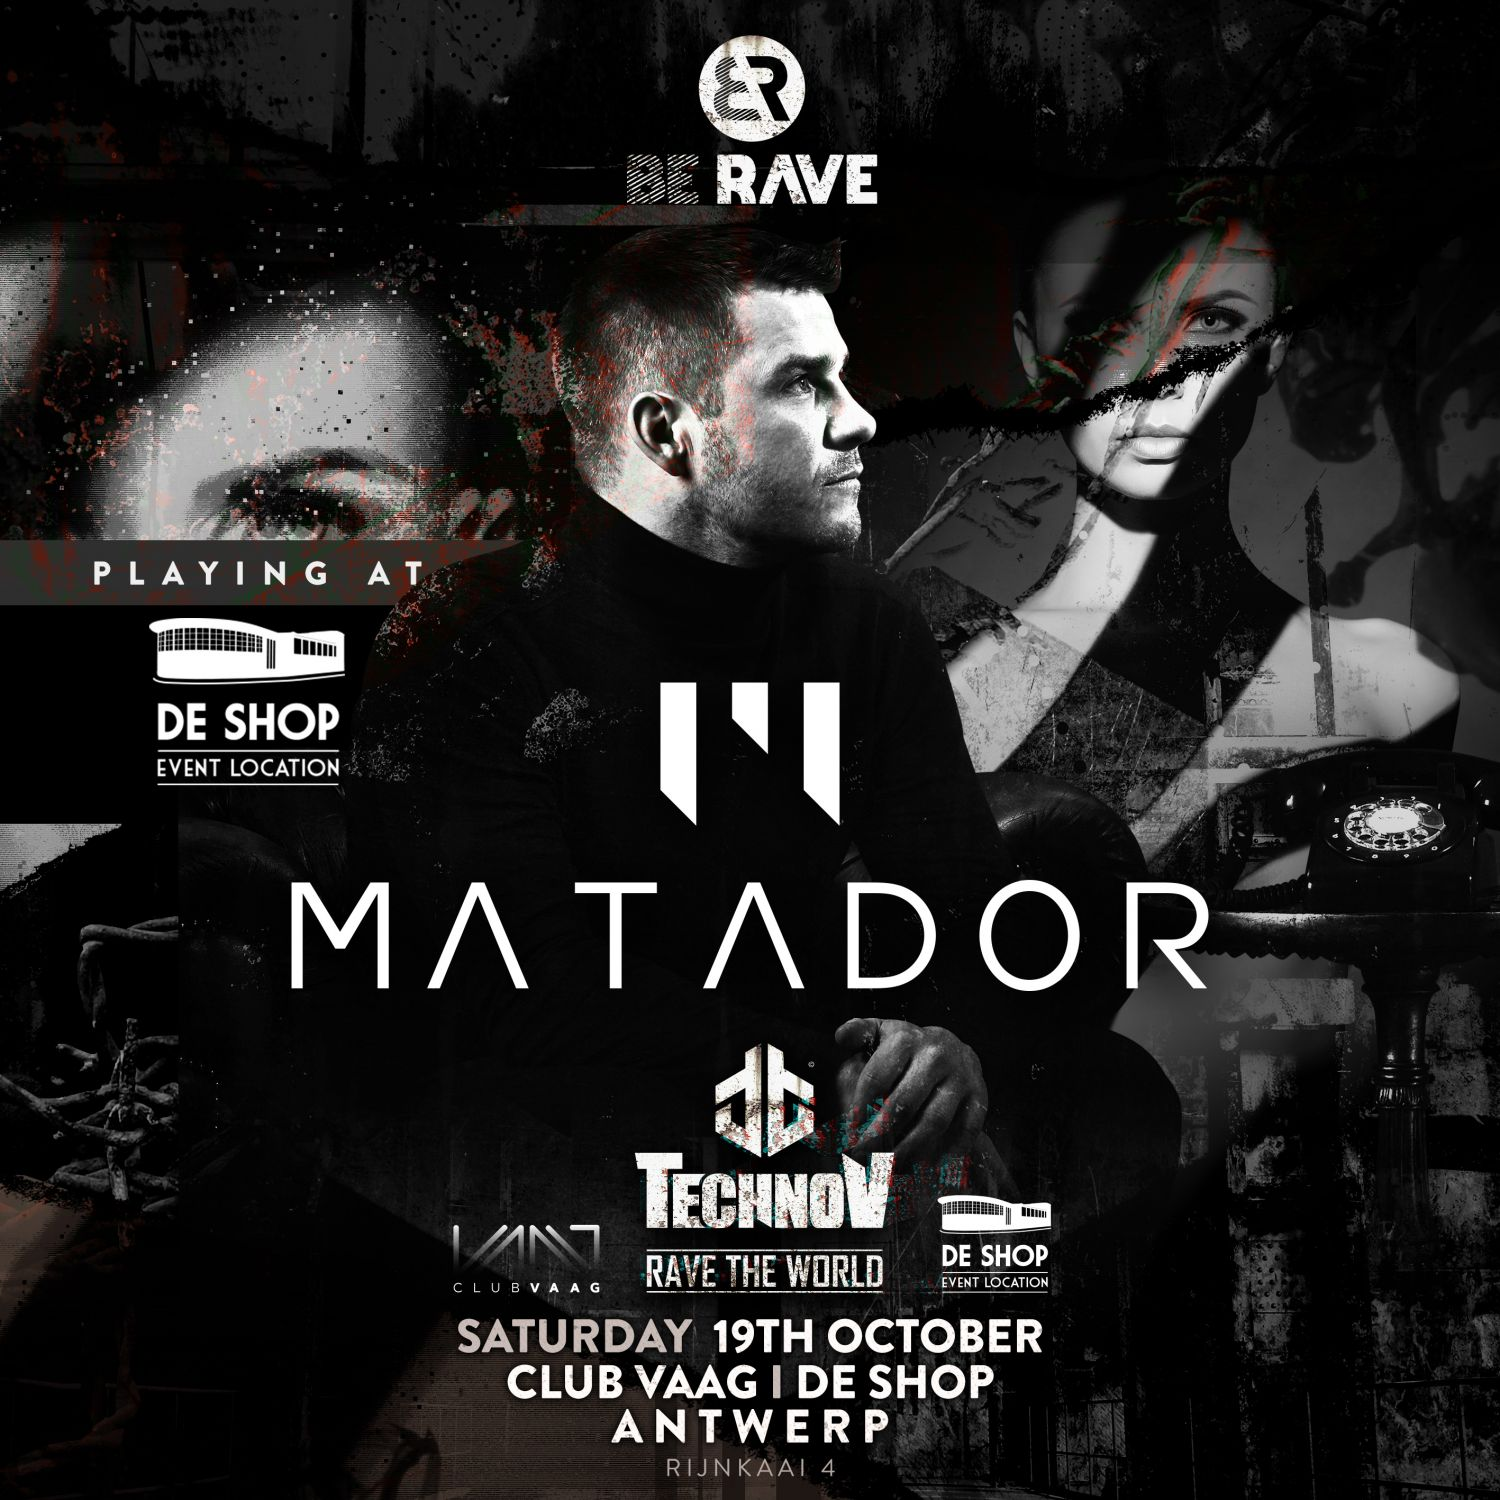 Matador at Be Rave presents TechnoV at De Shop and Club Vaag